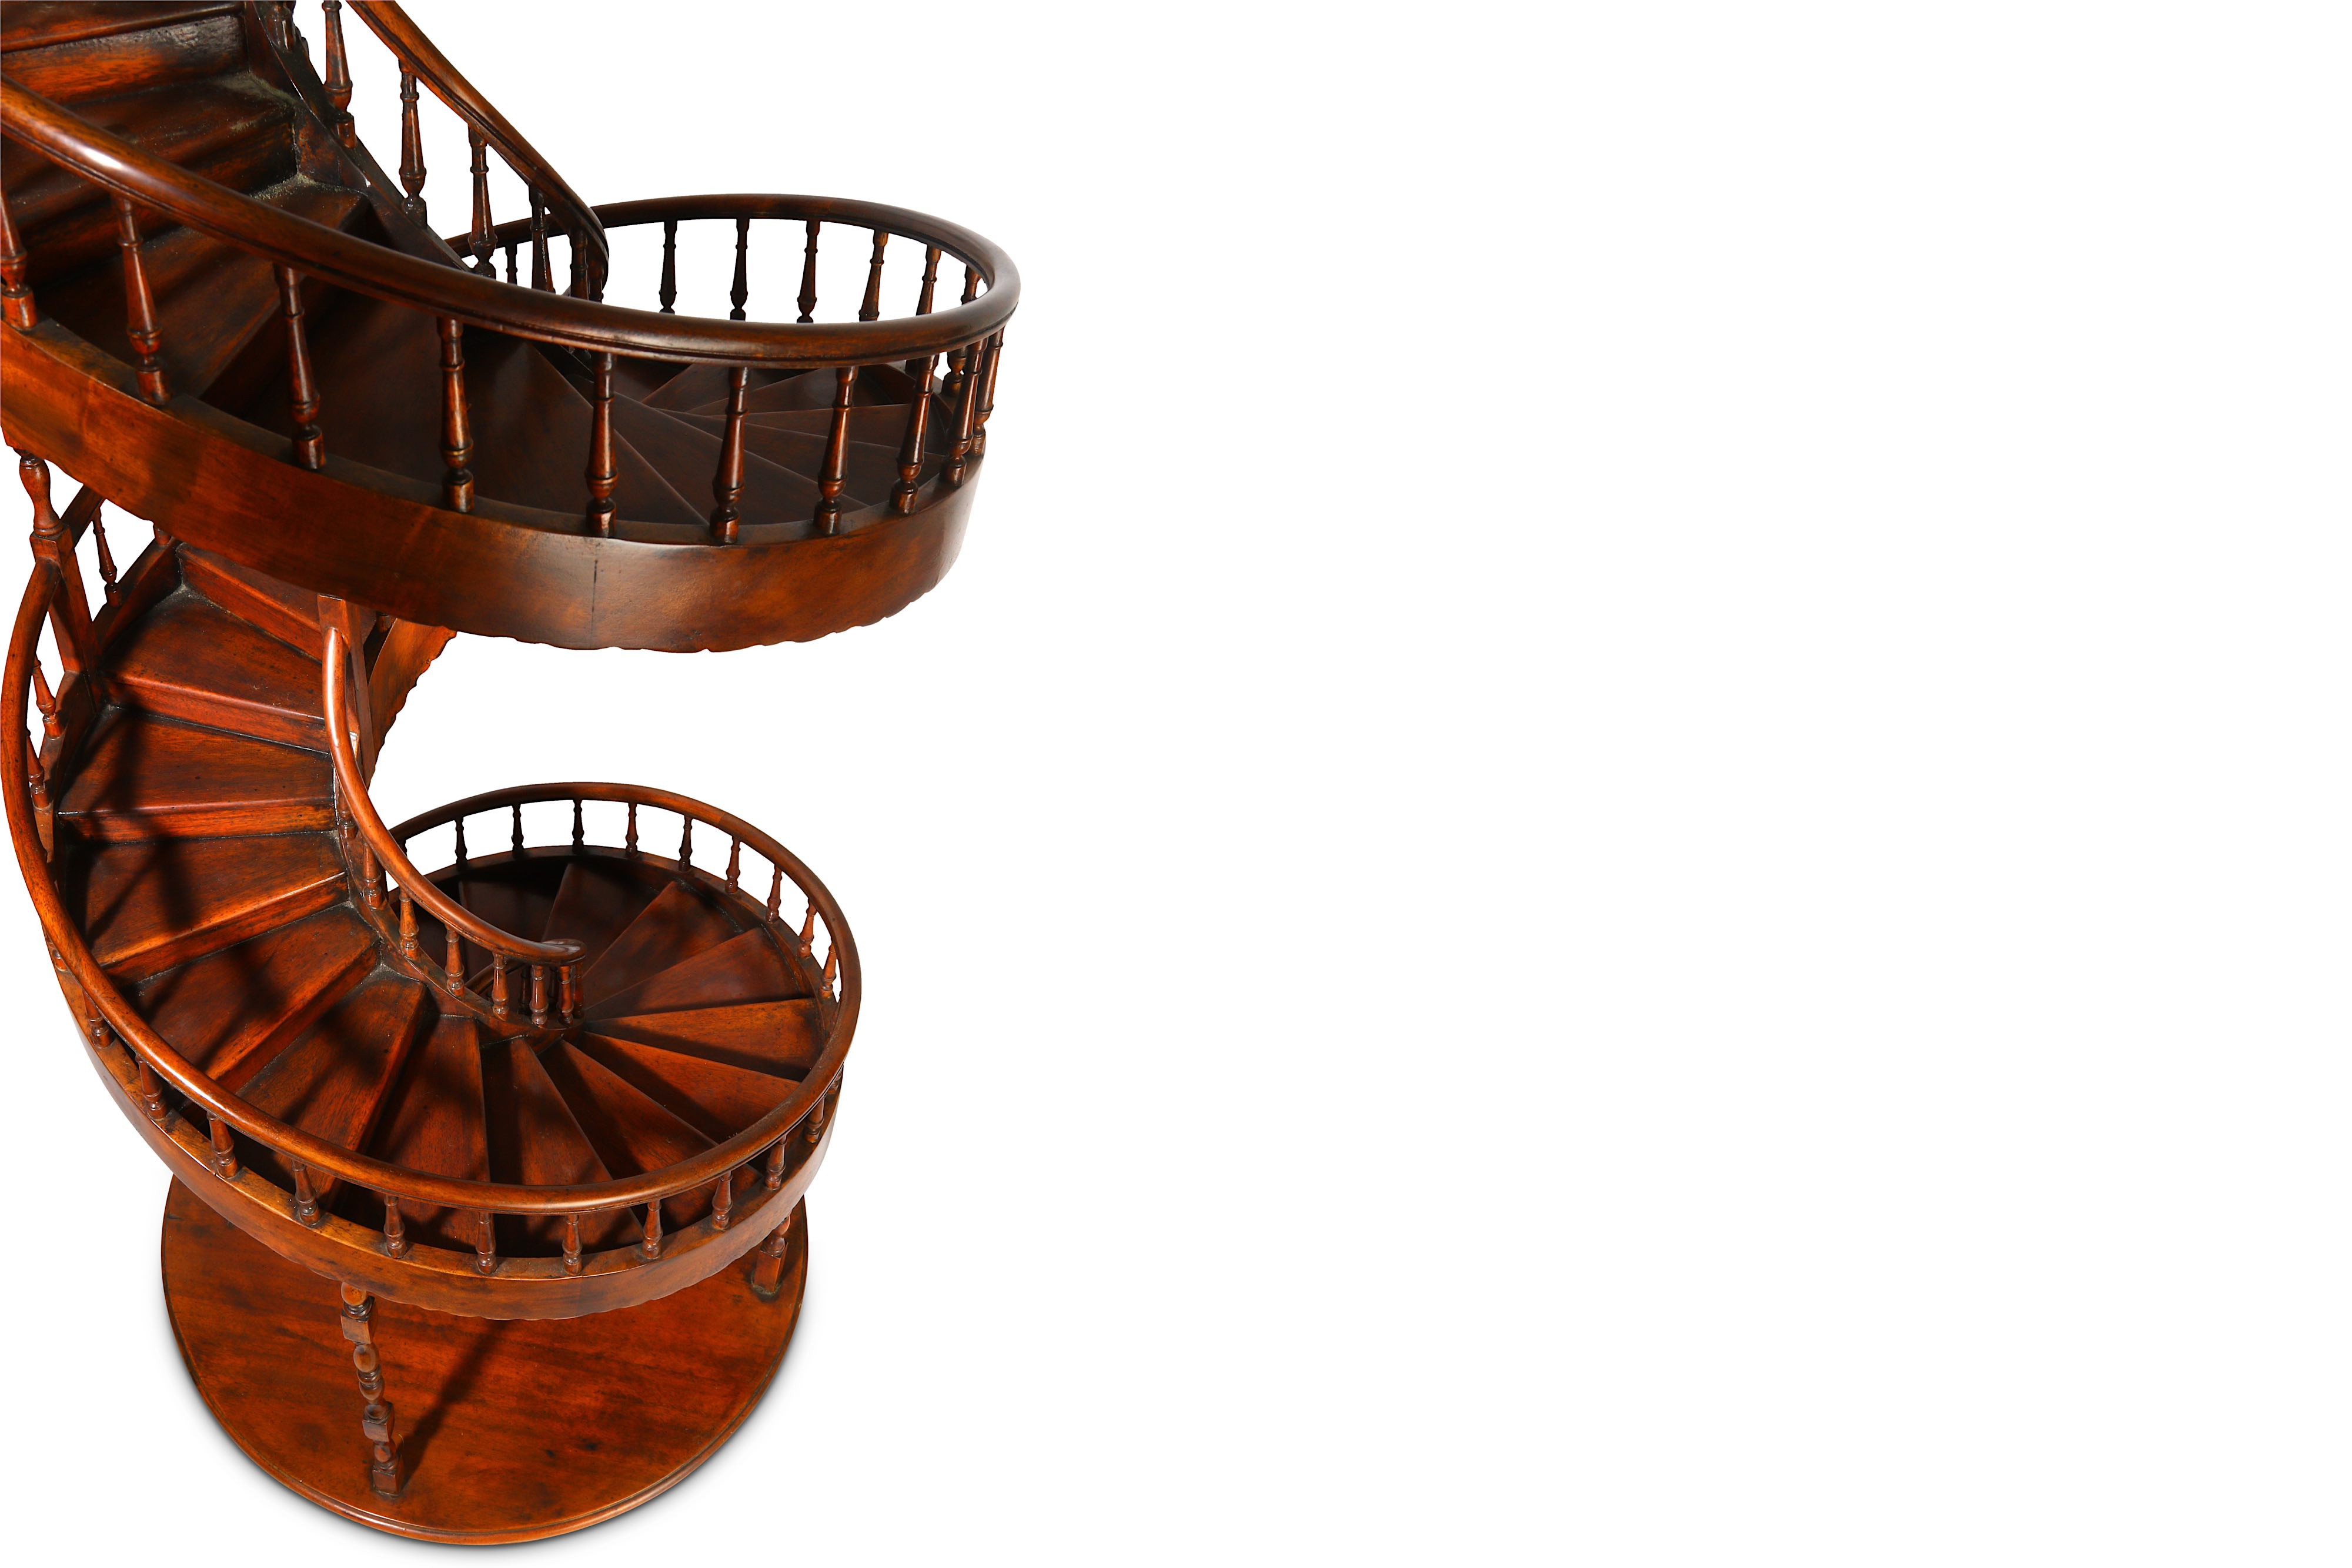 A LARGE EARLY 20TH CENTURY MAHOGANY APPRENTICE'S ARCHITECTURAL MODEL OF A SPIRAL STAIRCASE - Image 9 of 9